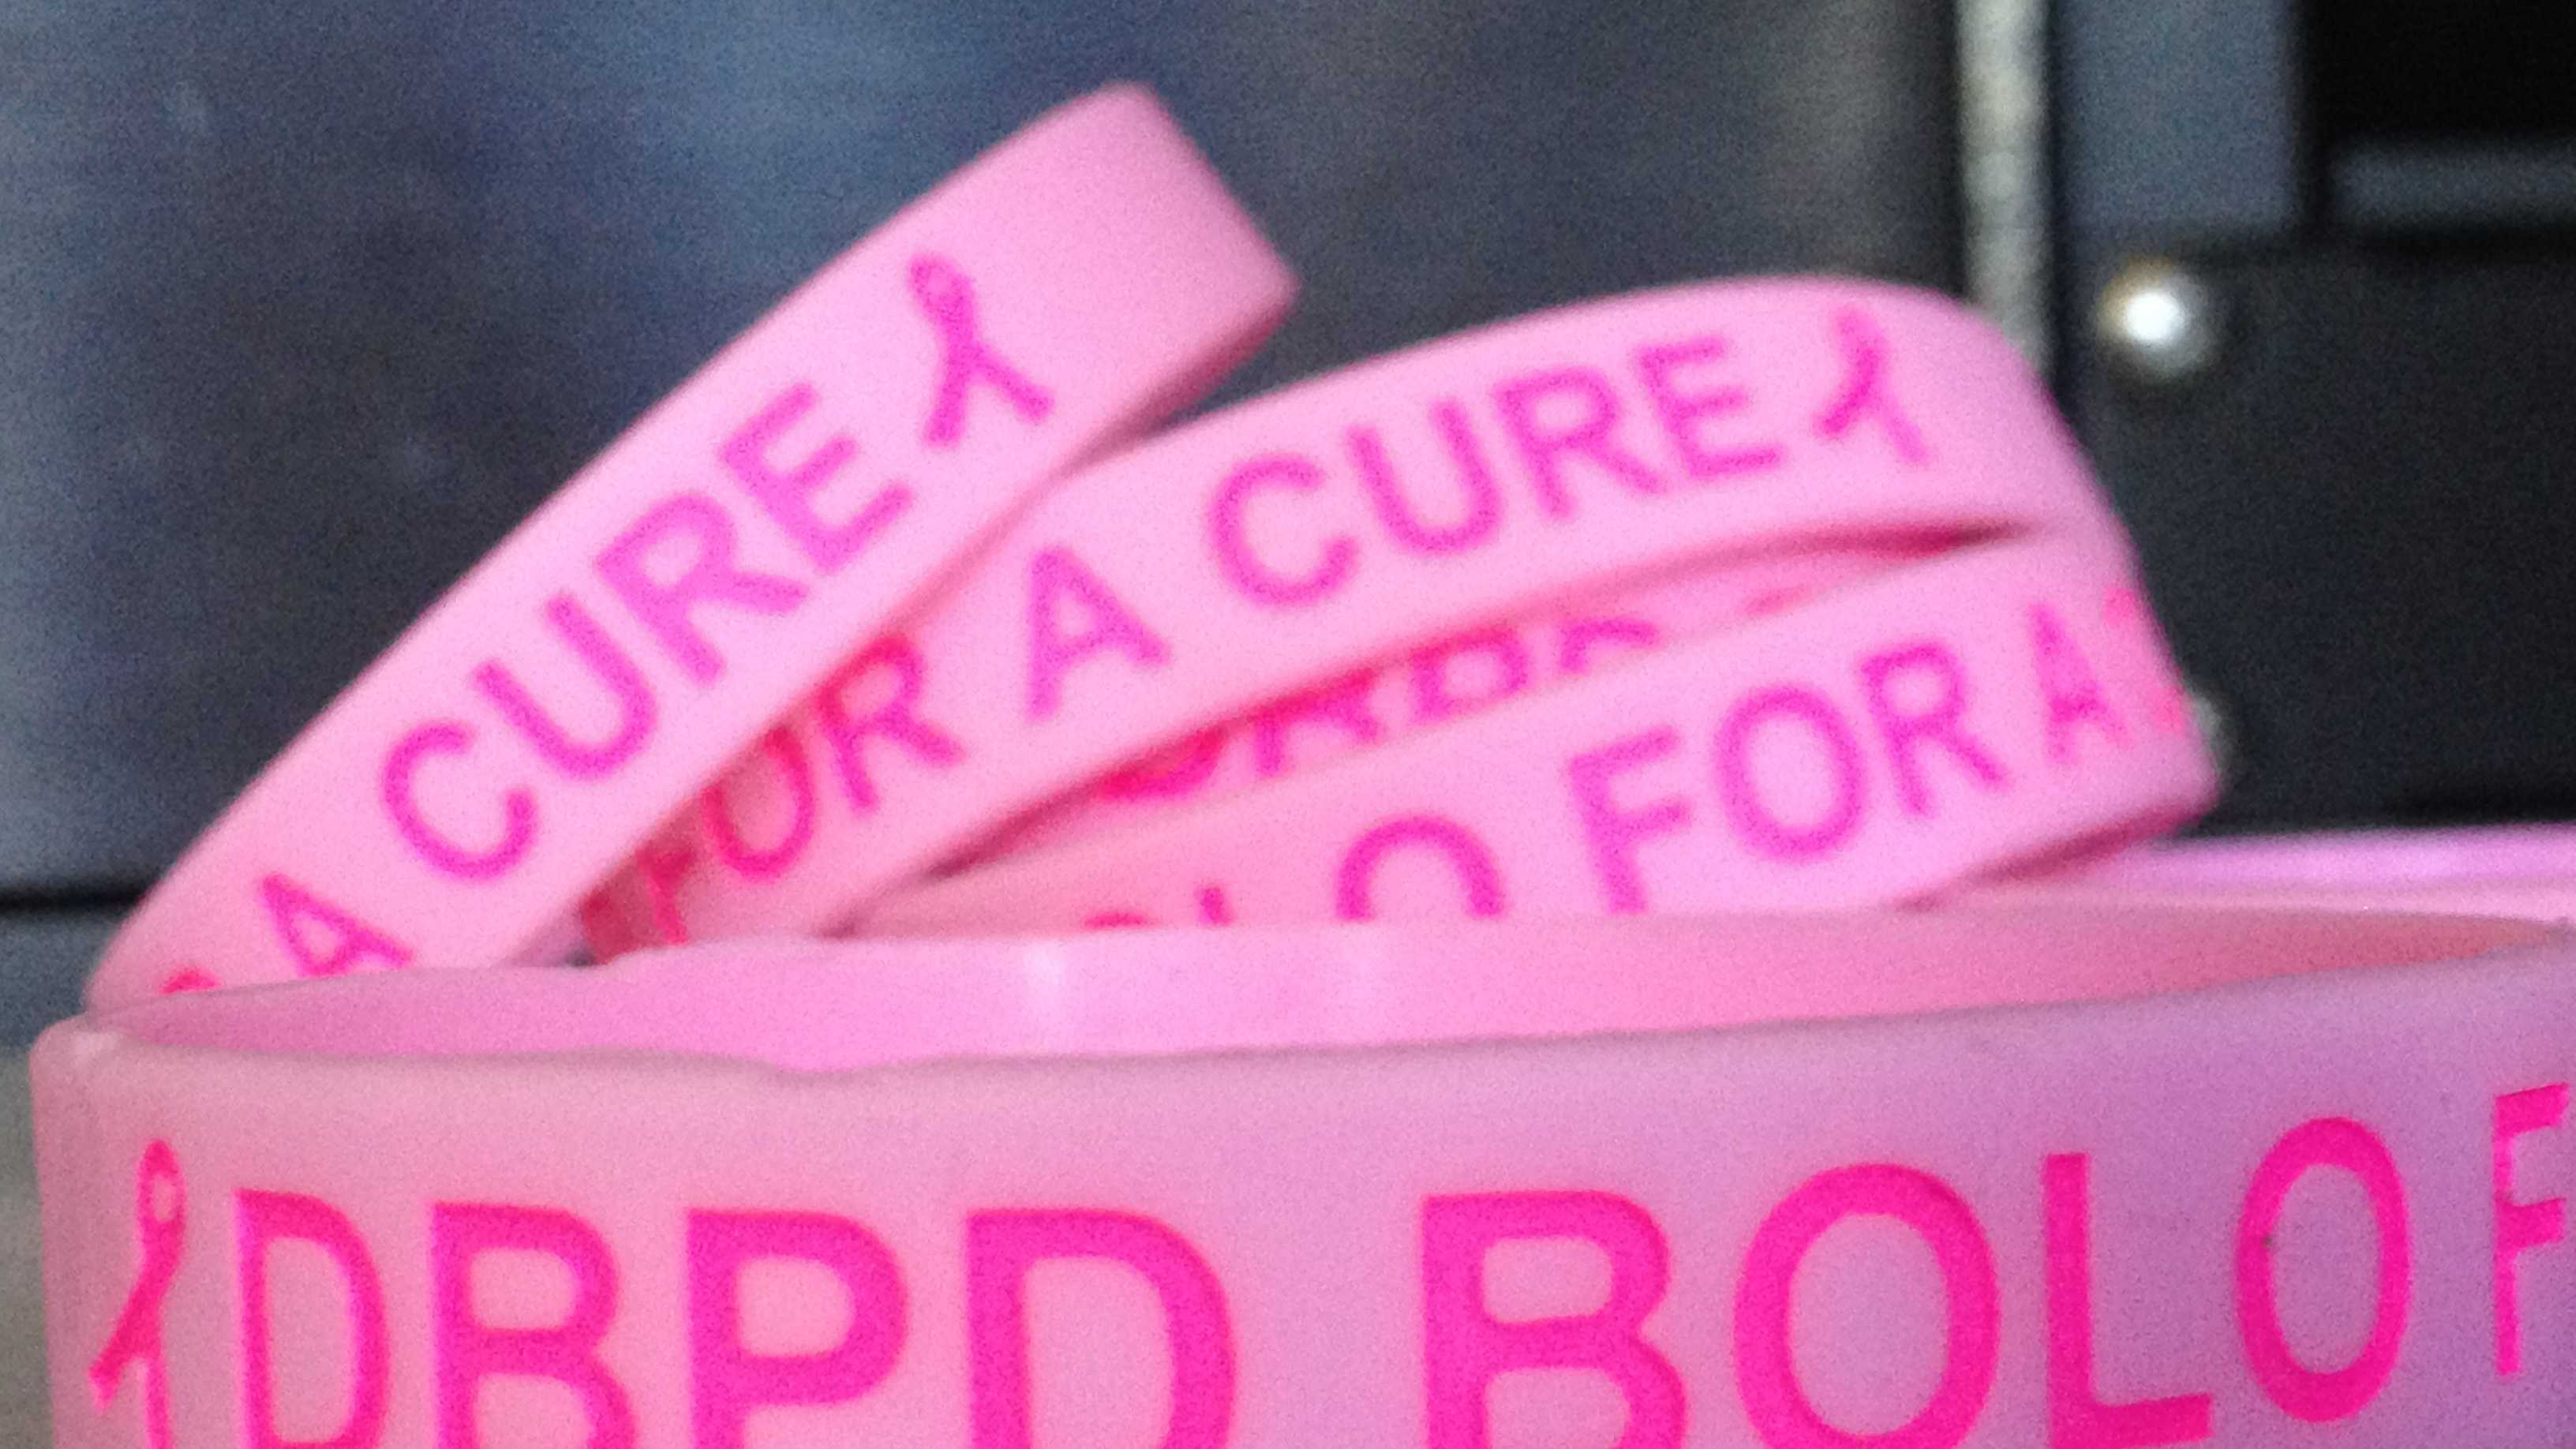 Delray Beach police officers will wear these bracelets during the month of October.